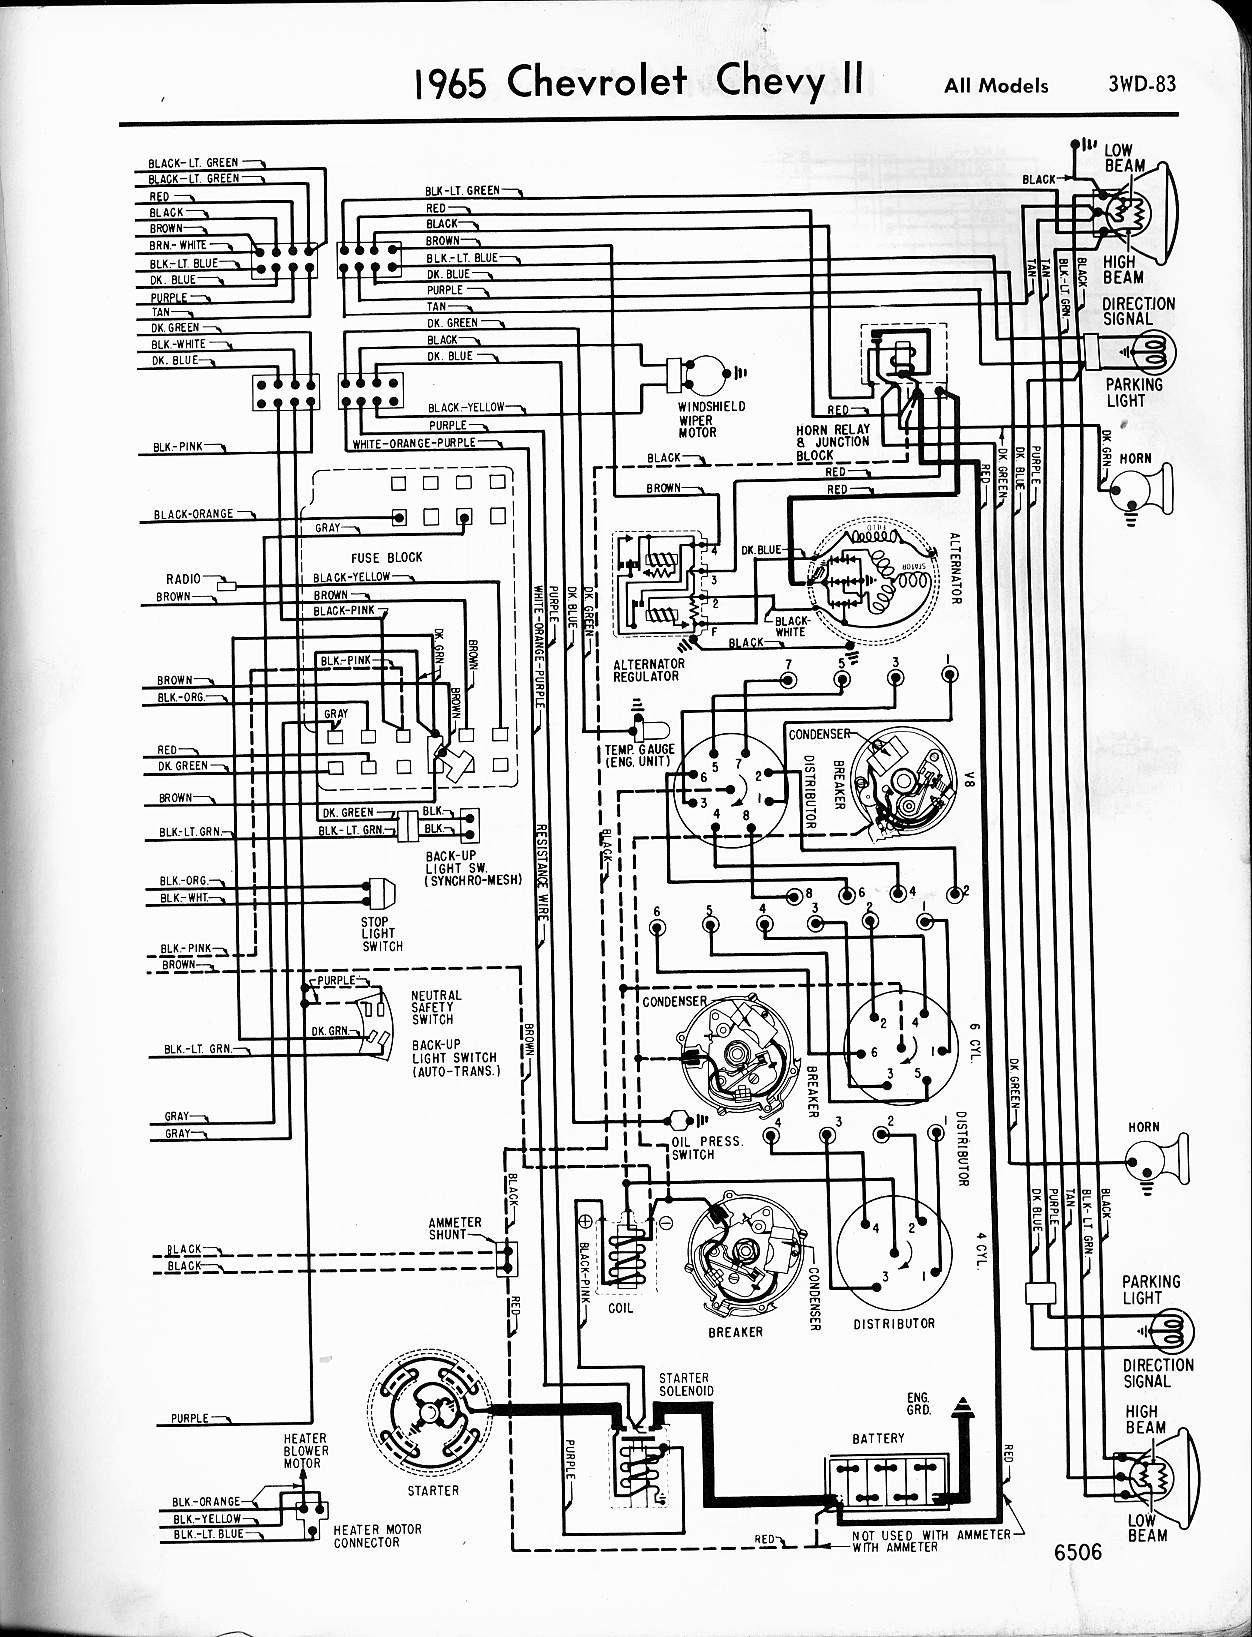 2008 Chevy Impala Wiring Diagram 1966 Chevrolet Impala Wiring Diagram Trusted Wiring Diagrams • Of 2008 Chevy Impala Wiring Diagram Chevrolet Impala Electrical System 2000 Chevrolet Impala Caroldoey